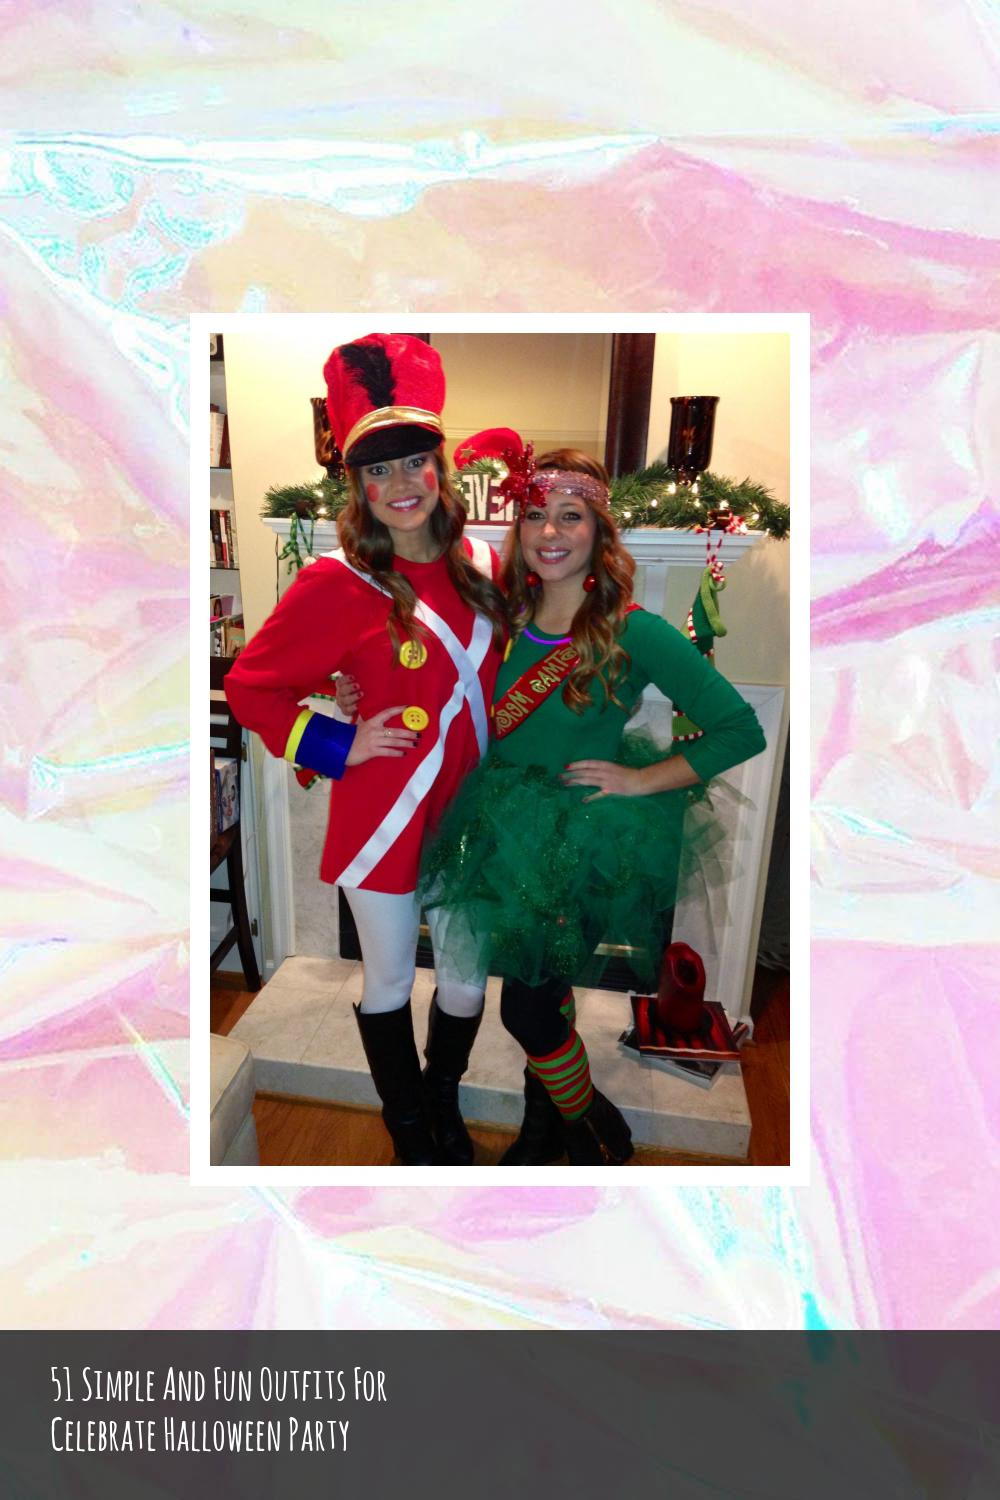 51 Simple And Fun Outfits For Celebrate Halloween Party 16